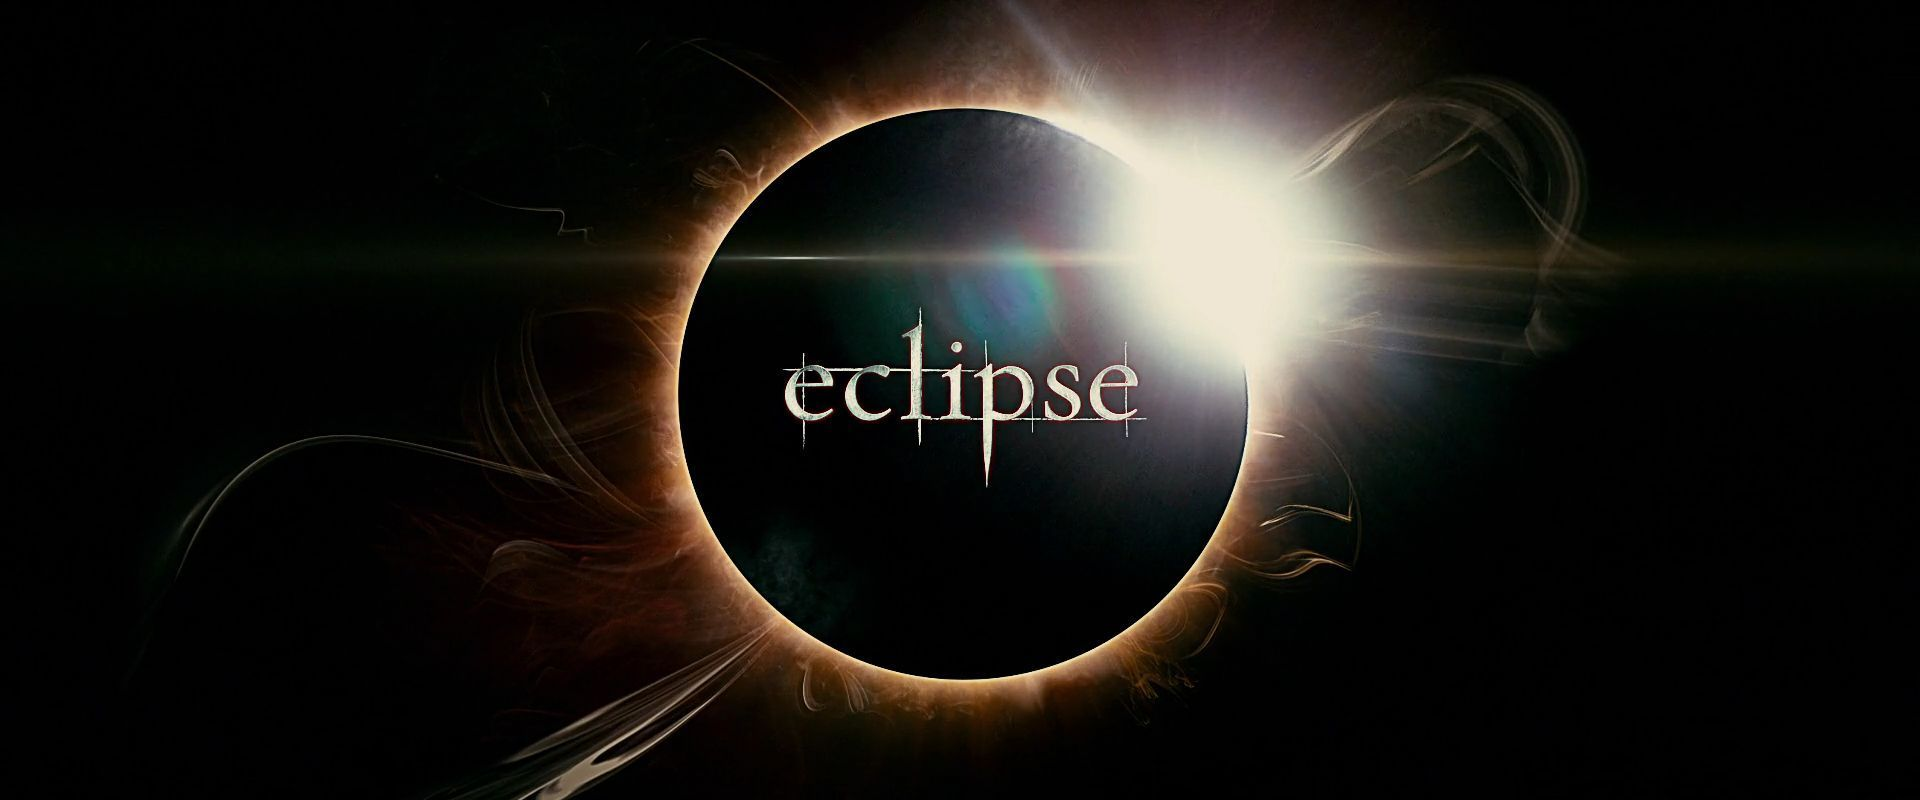 twilight series images eclipse - photo #23